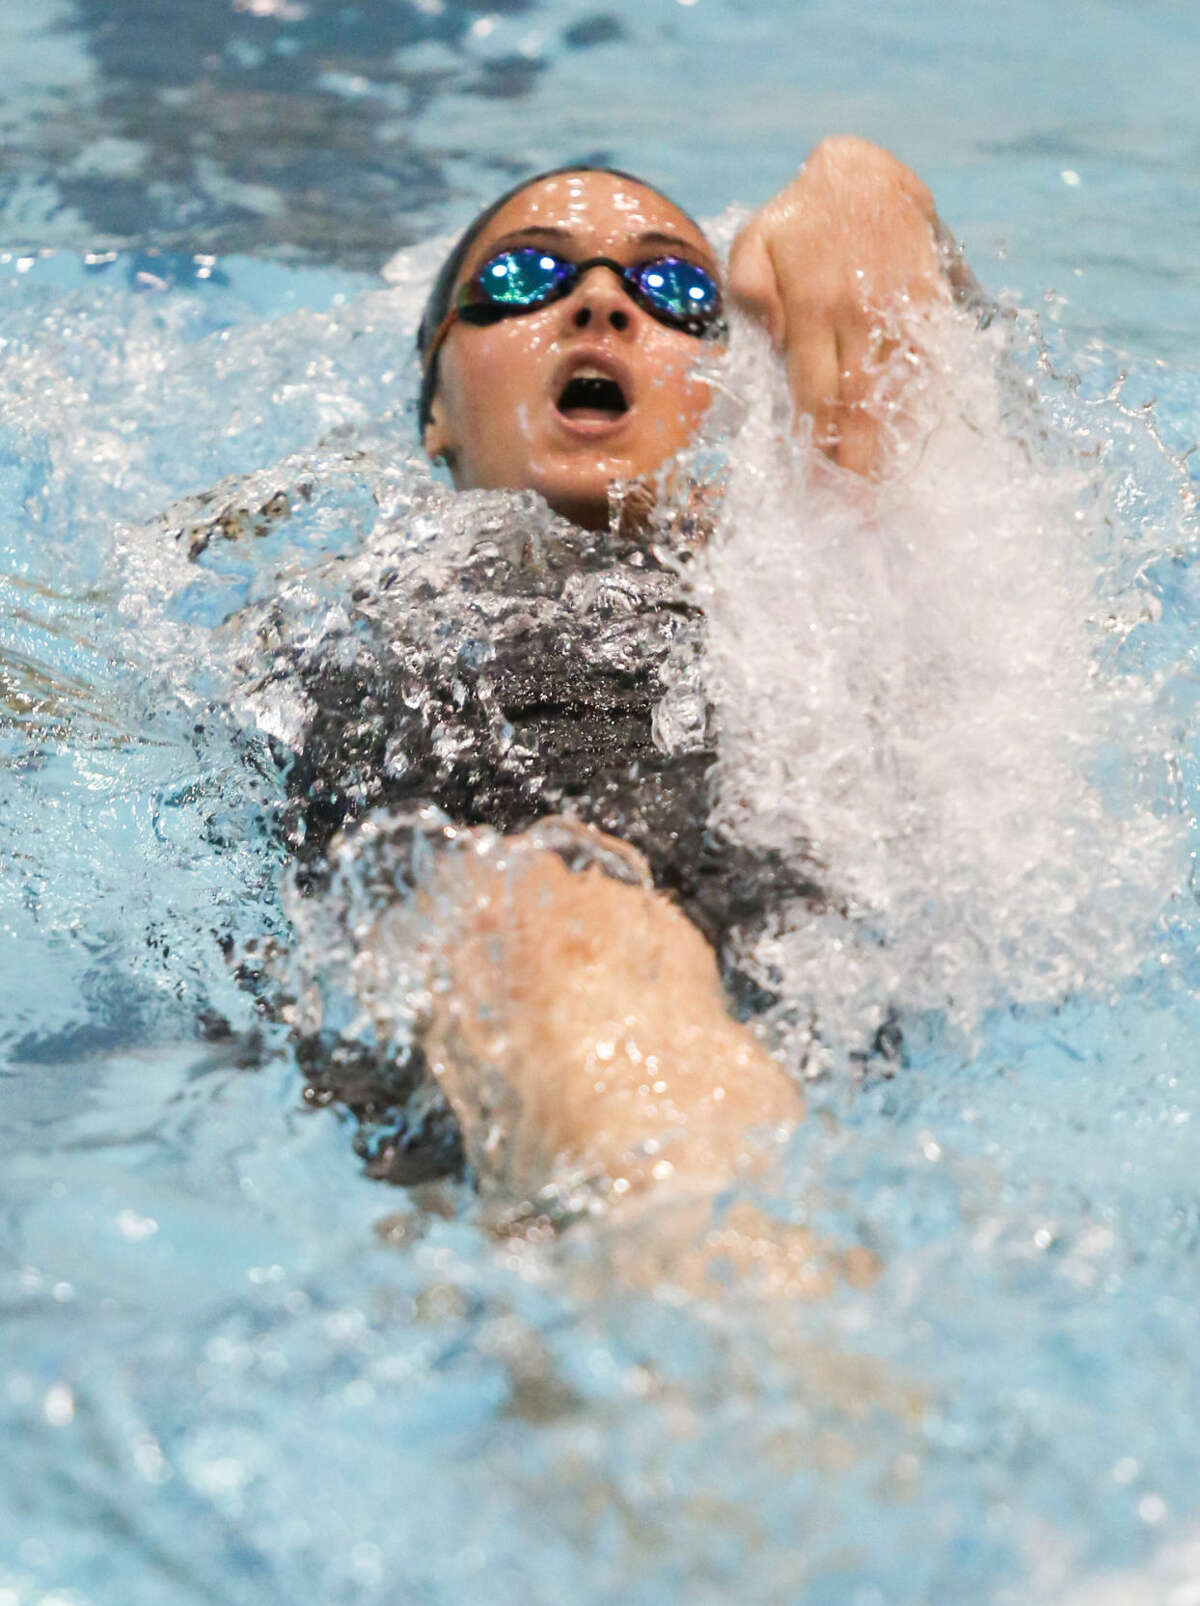 Hour photo/Chris Palermo. Isabel Anbar competes in the backstroke at the CIAC swim championships at Southern Connecticut State University Tuesdaynight.